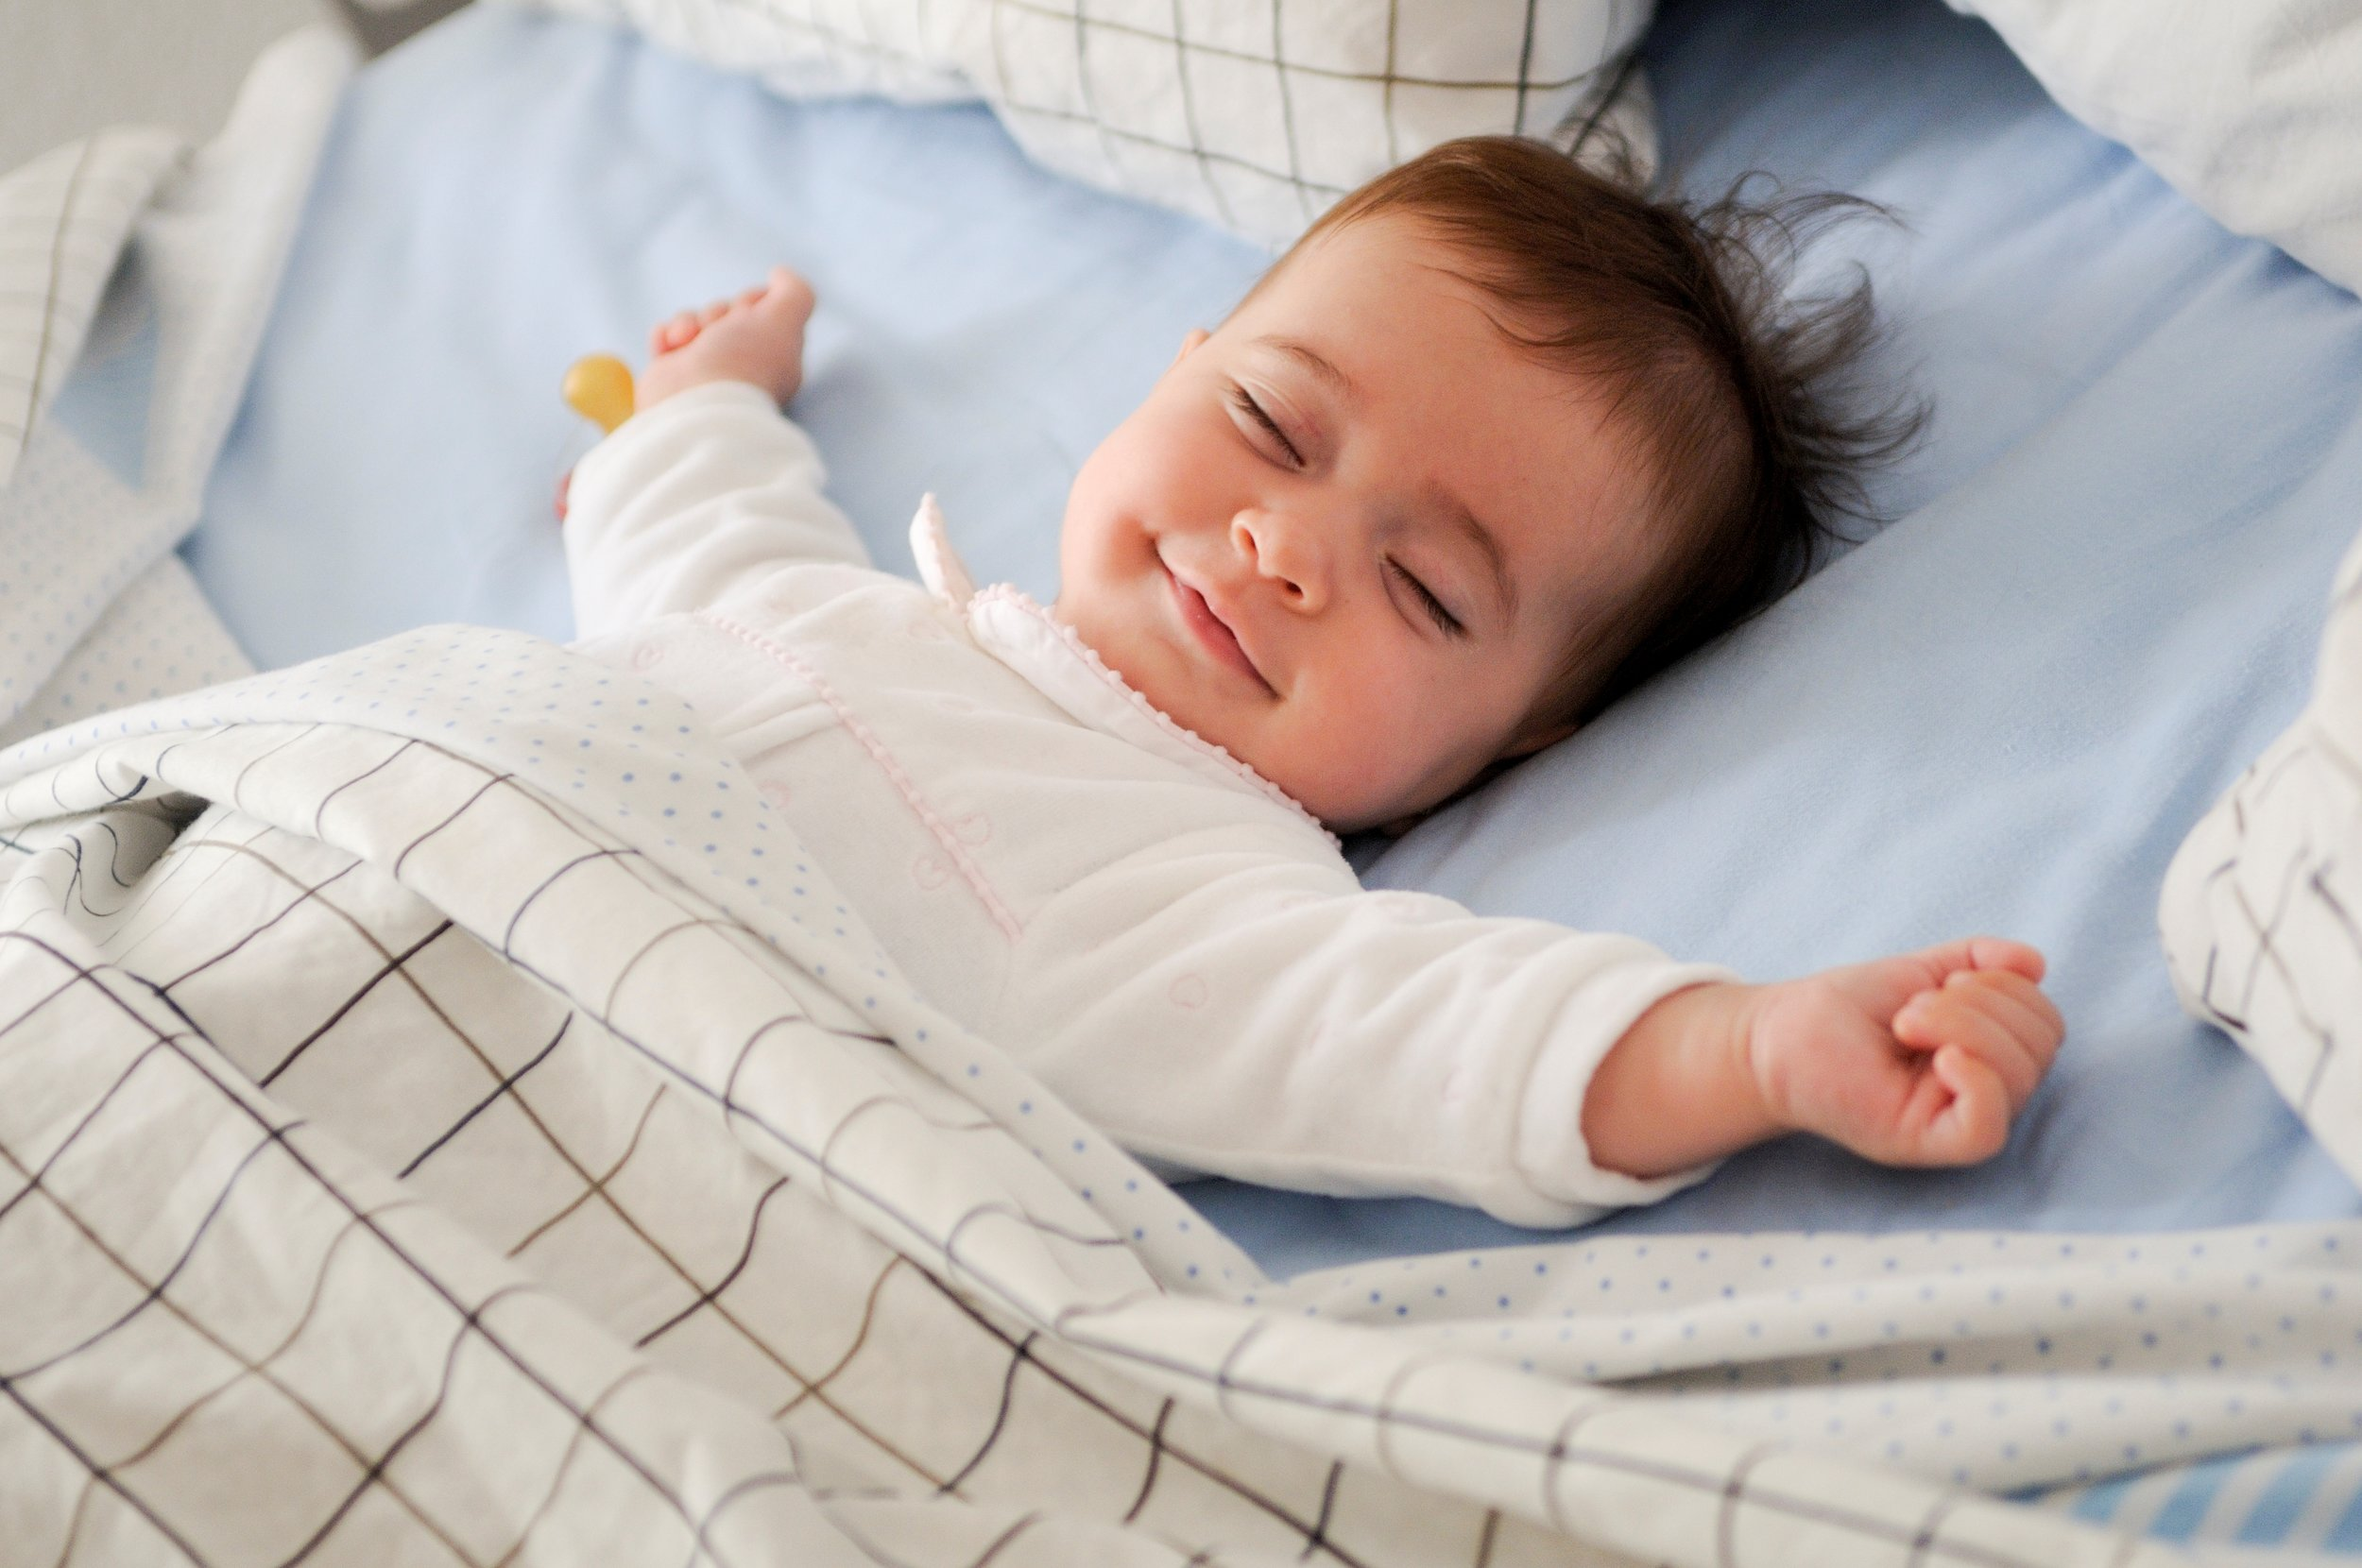 Young child sleeping in bed. Sleep can help fix the blood-brain barrier when it becomes leaky.